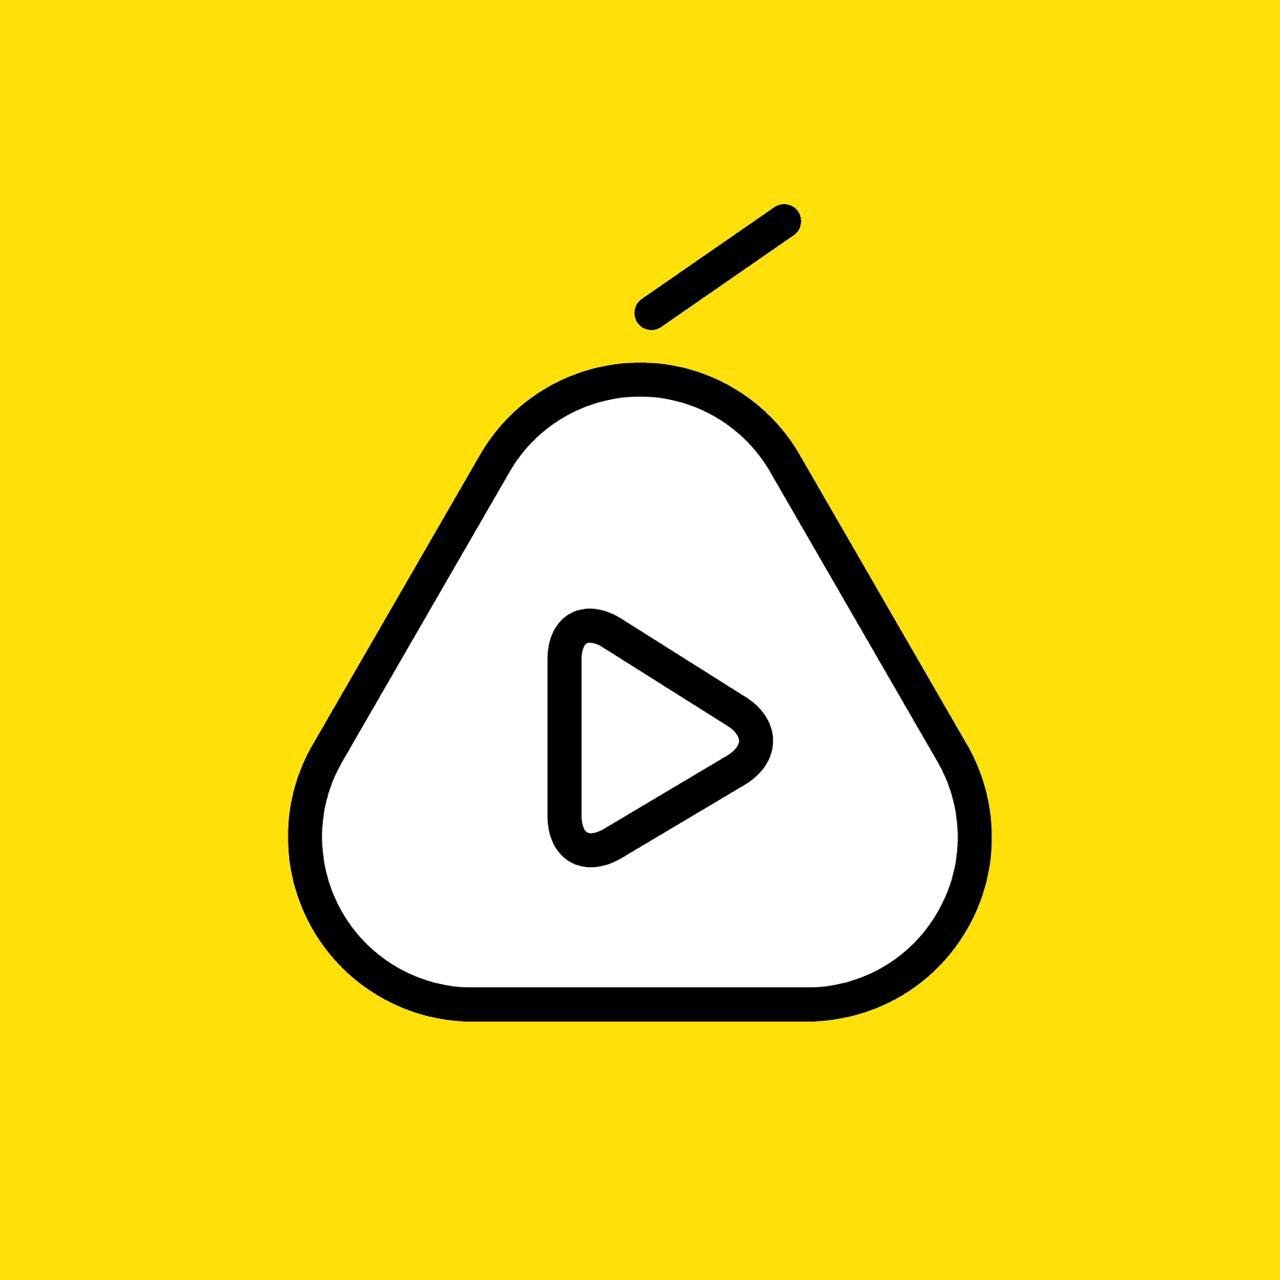 @PearVideo